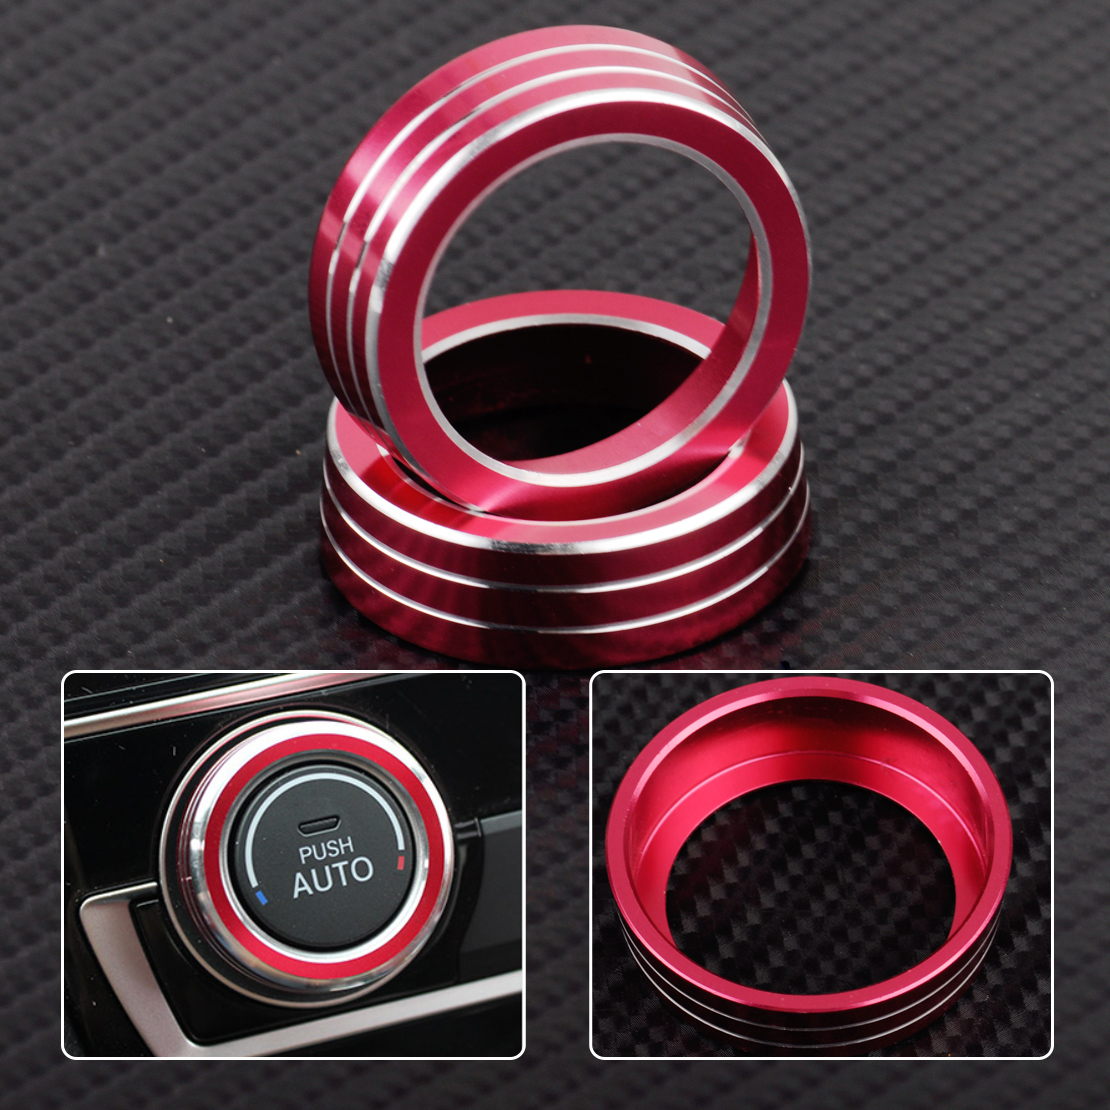 CITALL 2pcs Aluminum AC Switch Buttons Cover Air Condition Climate Control Ring Knob Trim for Honda Civic 2016 2017 Shape only